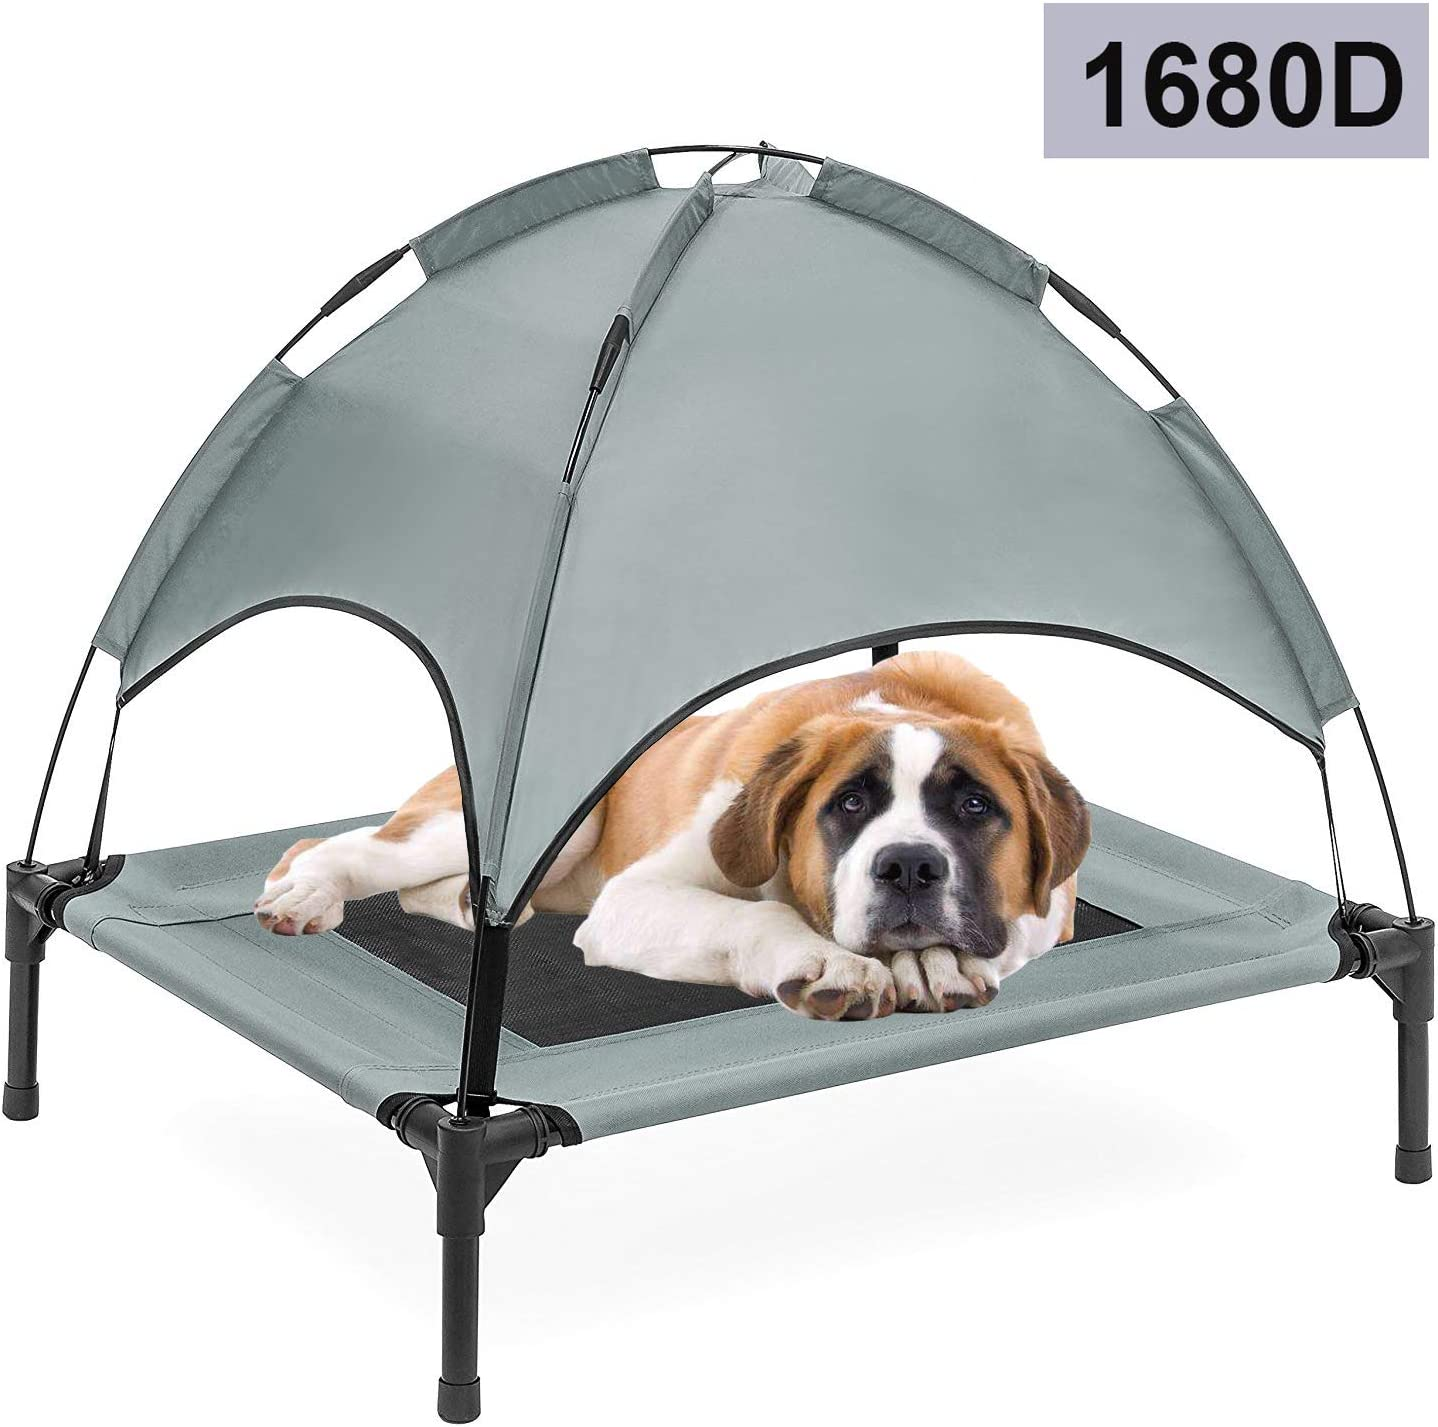 """Reliancer 30""""\36""""\48"""" XLarge Elevated Dog Cot with Canopy Shade 1680D Oxford Fabric Outdoor Pet Cat Cooling BedTent w/Convenient Carrying Bag Indoor Sturdy Steel Frame Portable for Camping Beach"""